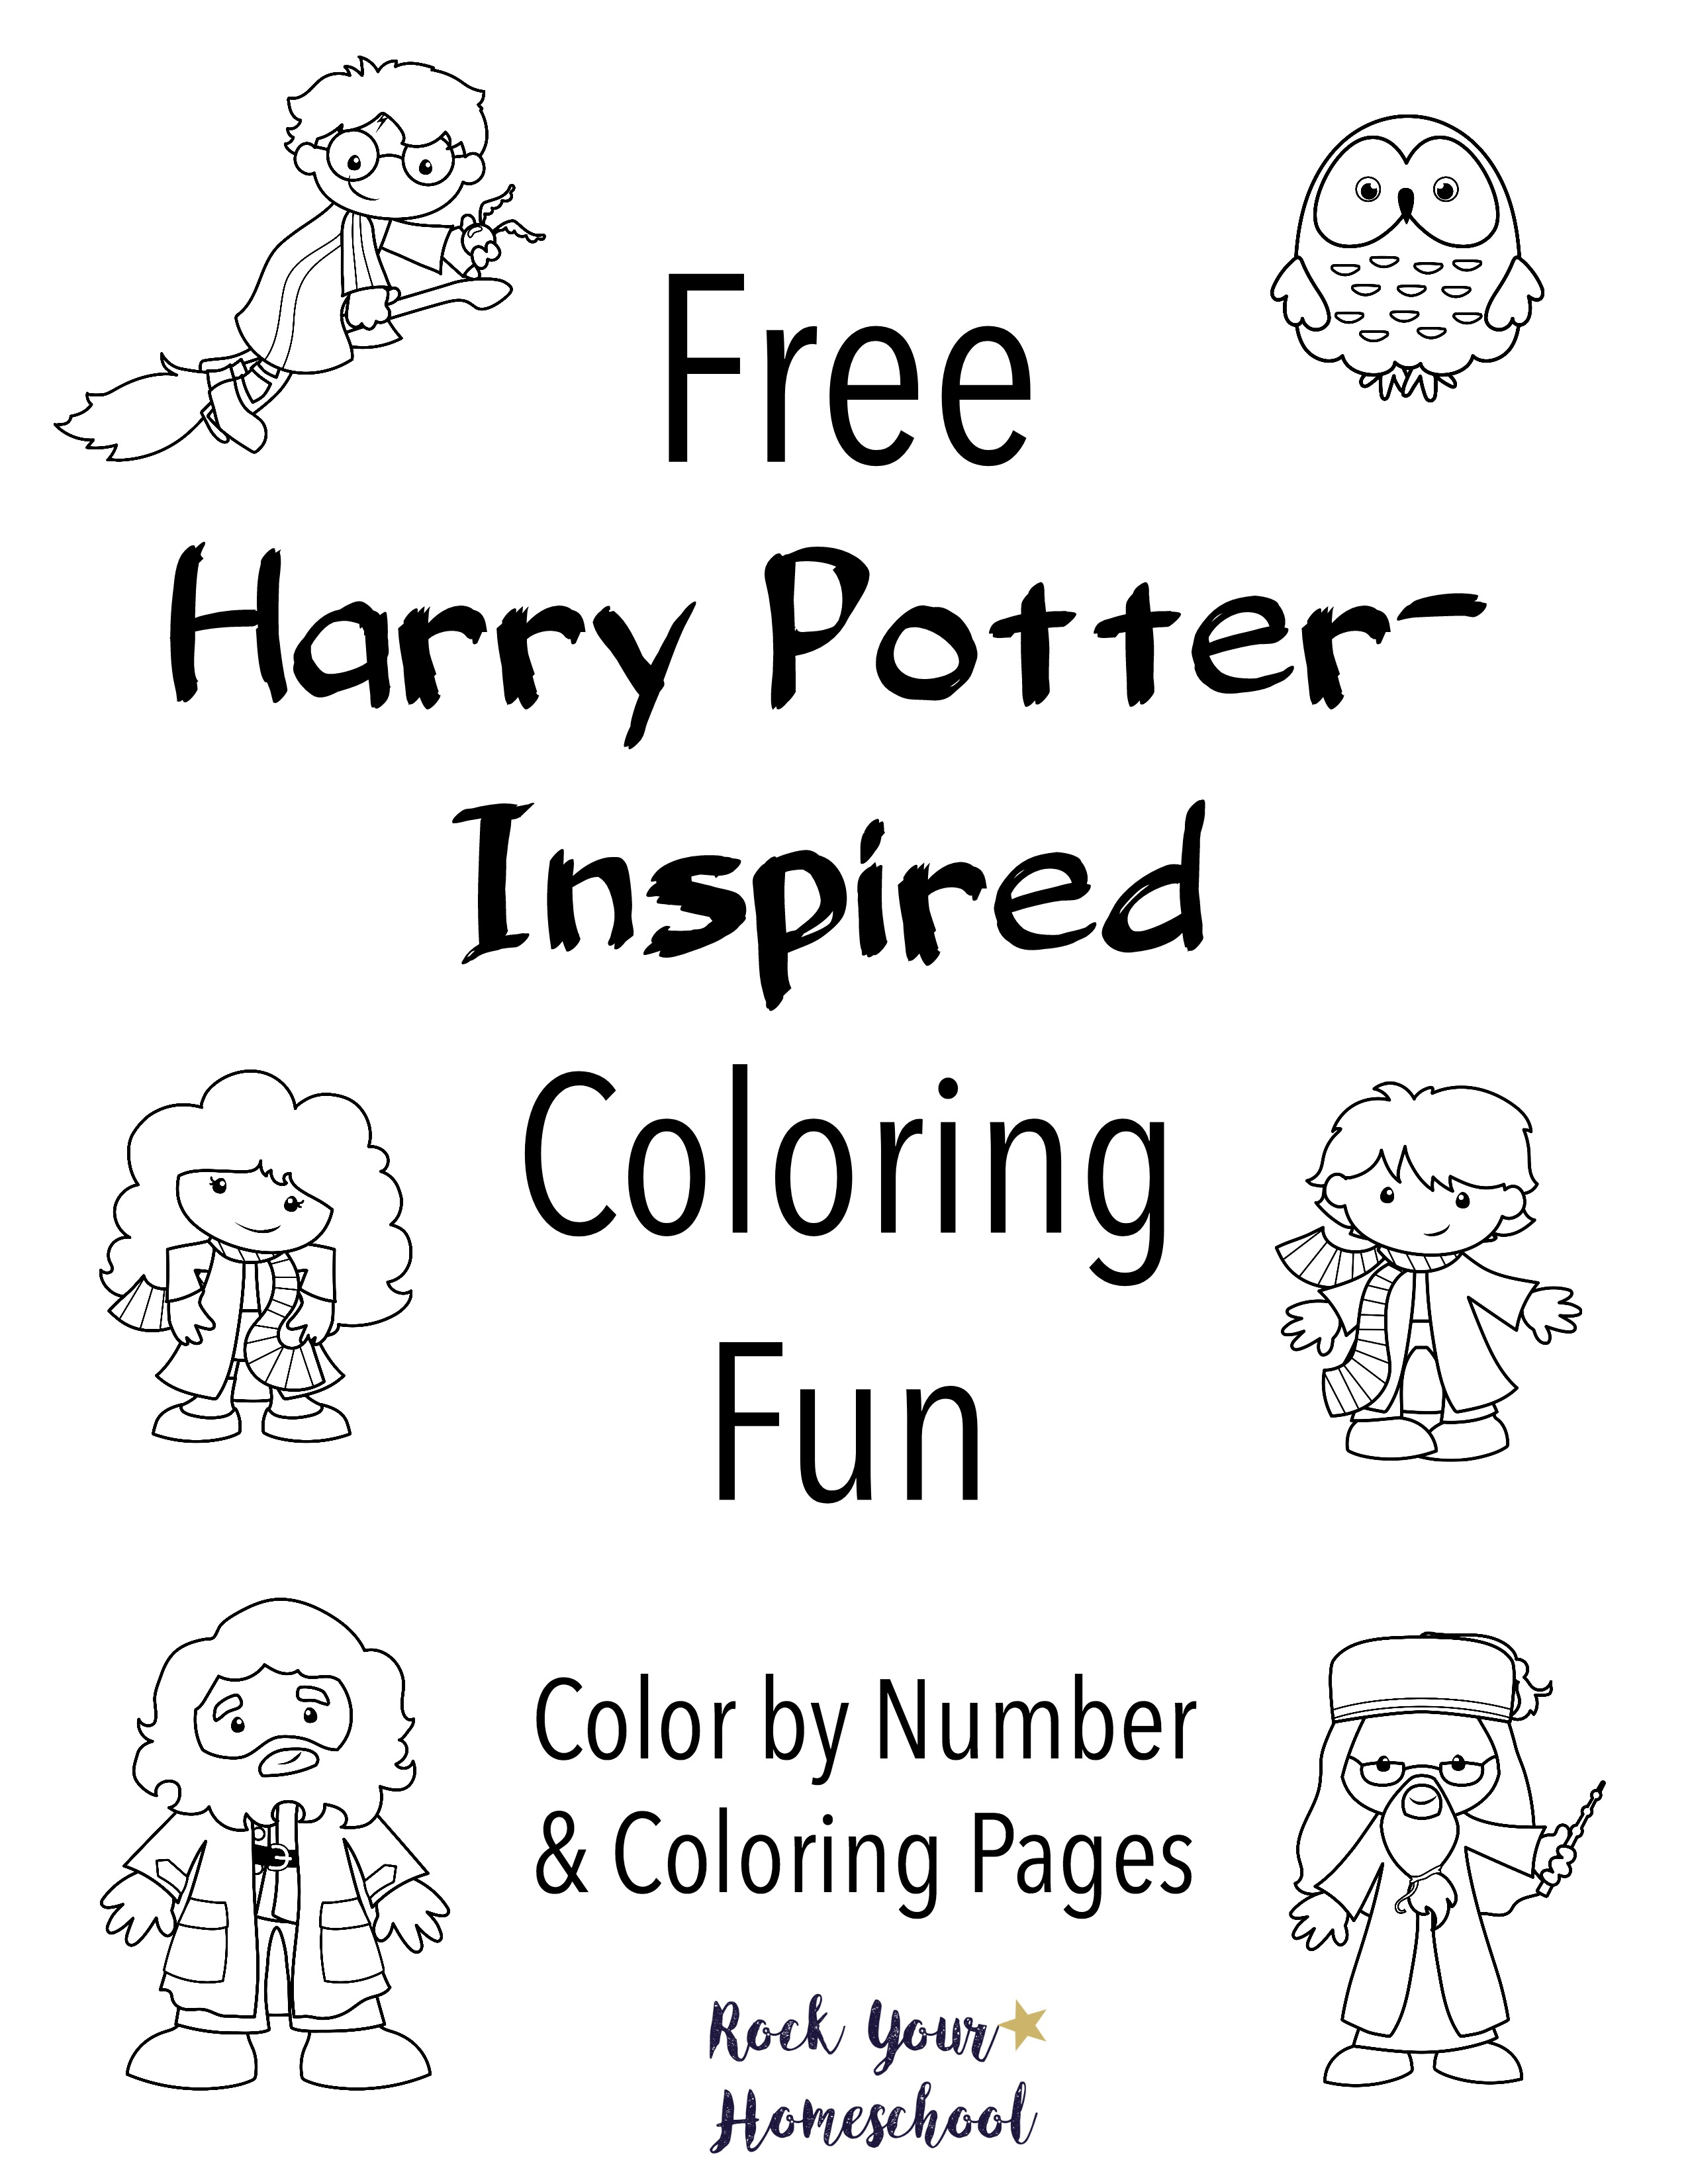 The Best Free Slytherin Coloring Page Images Download From 13 Free Coloring Pages Of Slytherin